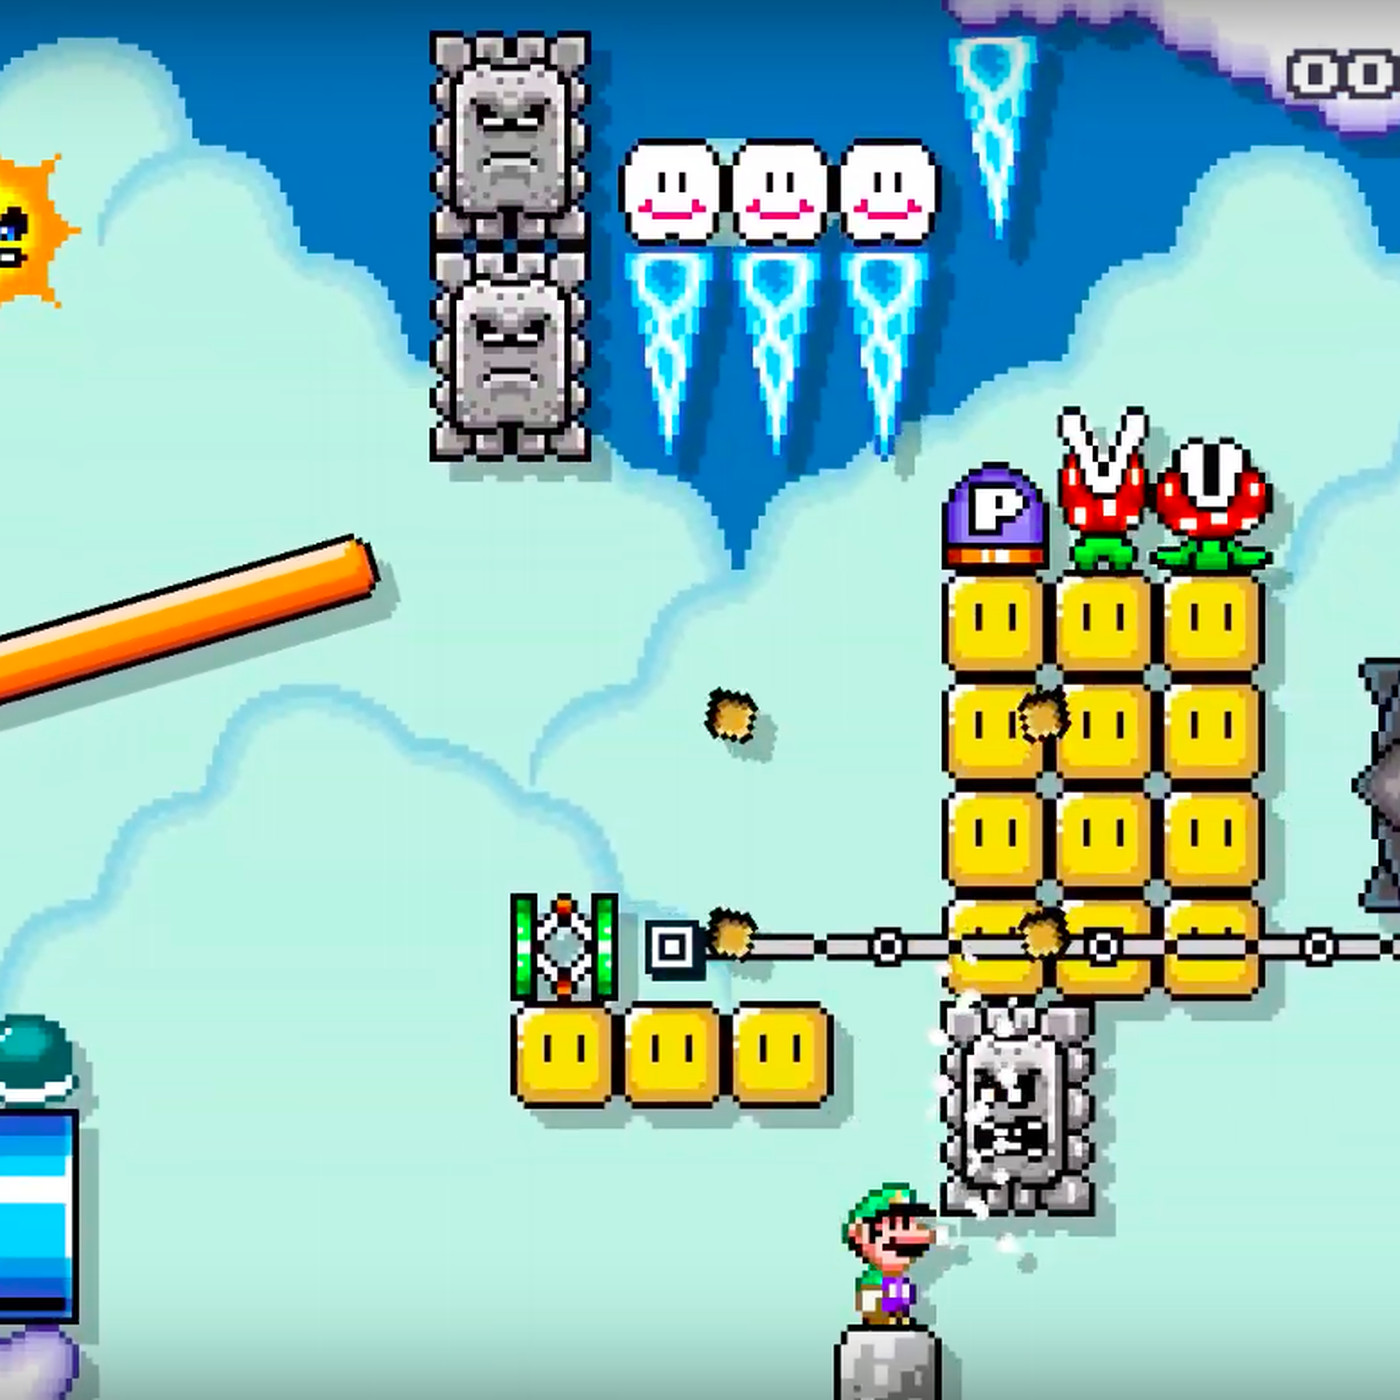 Luigi wins Super Mario Maker 2 levels by doing absolutely nothing